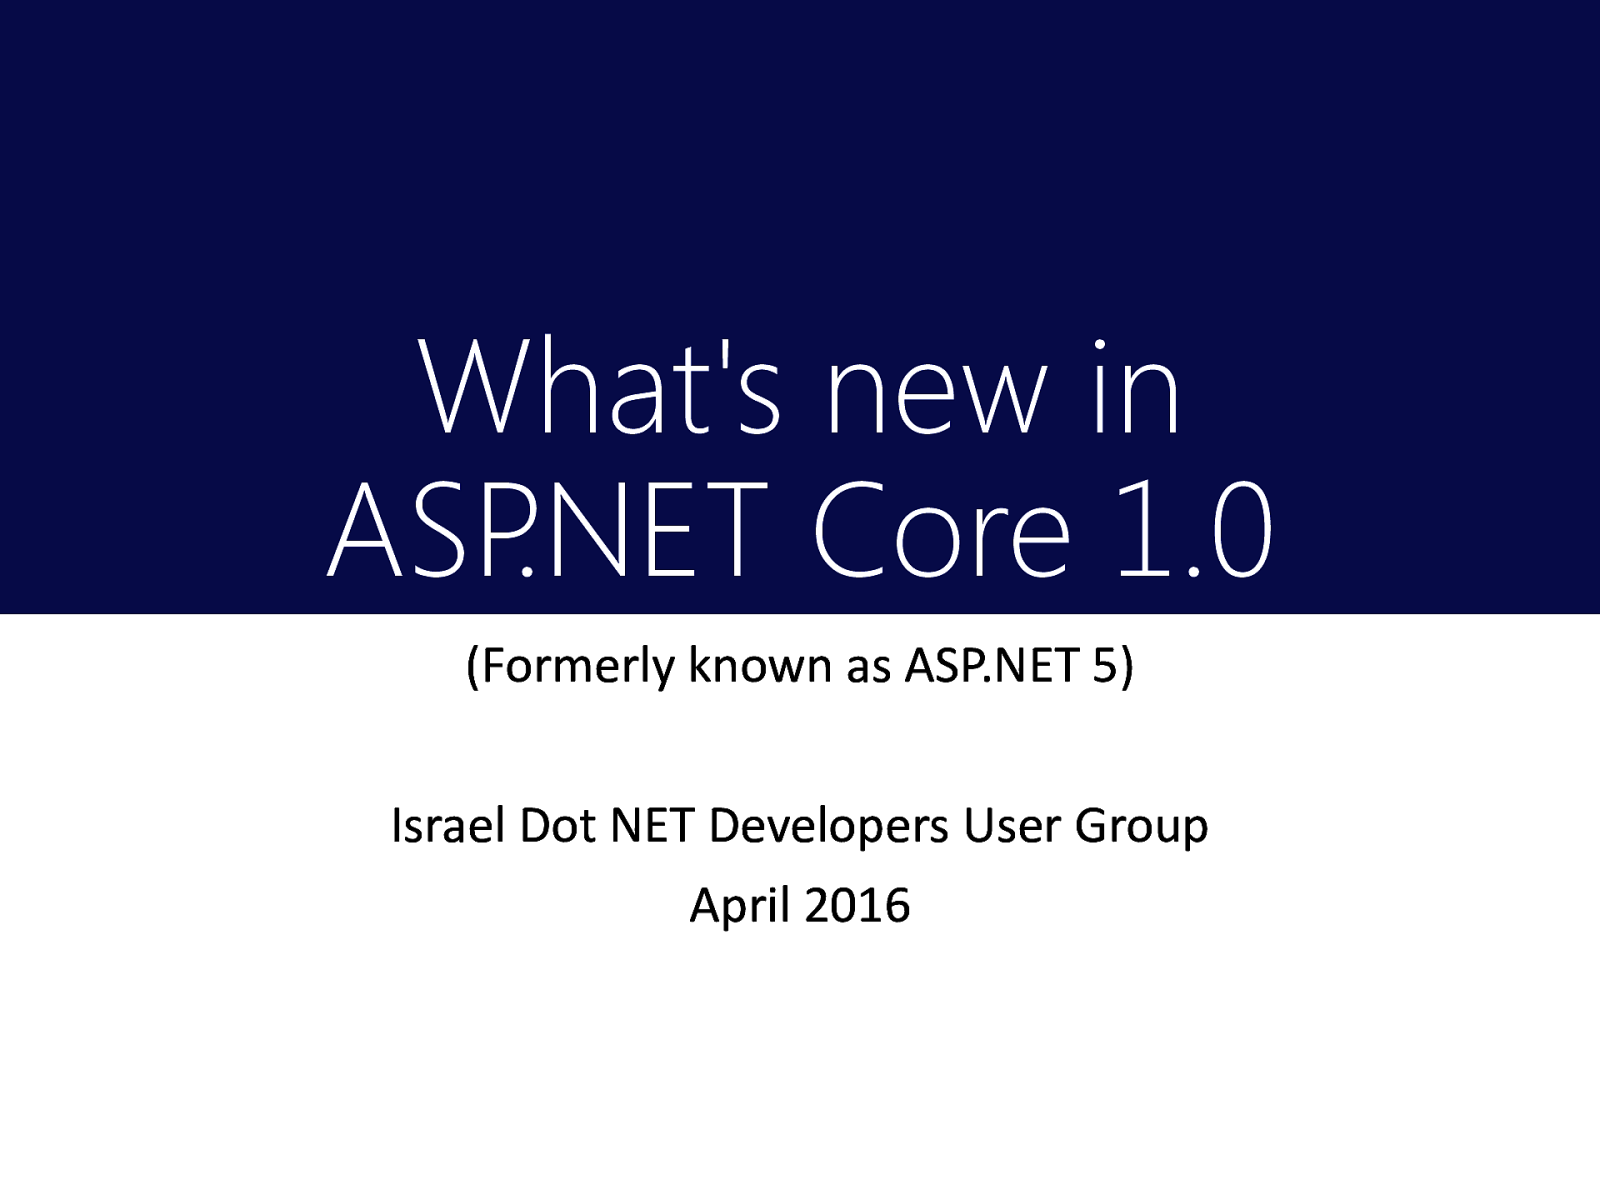 What's new in ASP.NET Core 1.0